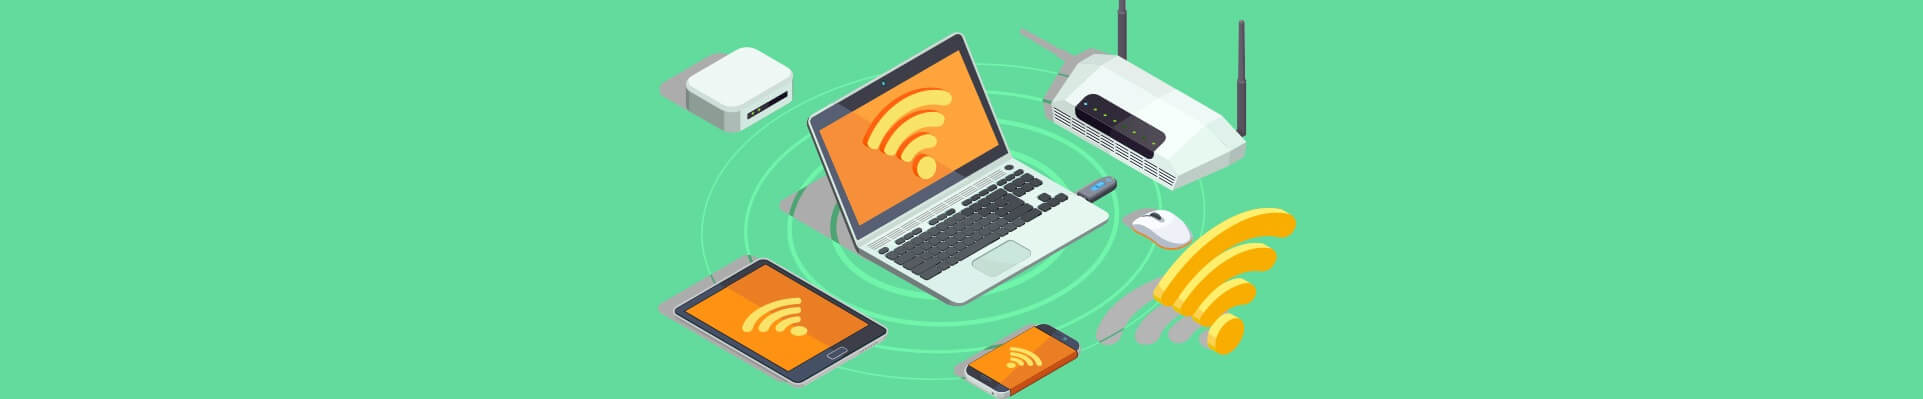 5 SOLUTIONS TO AVOID SLOW WI-FI SPEEDS